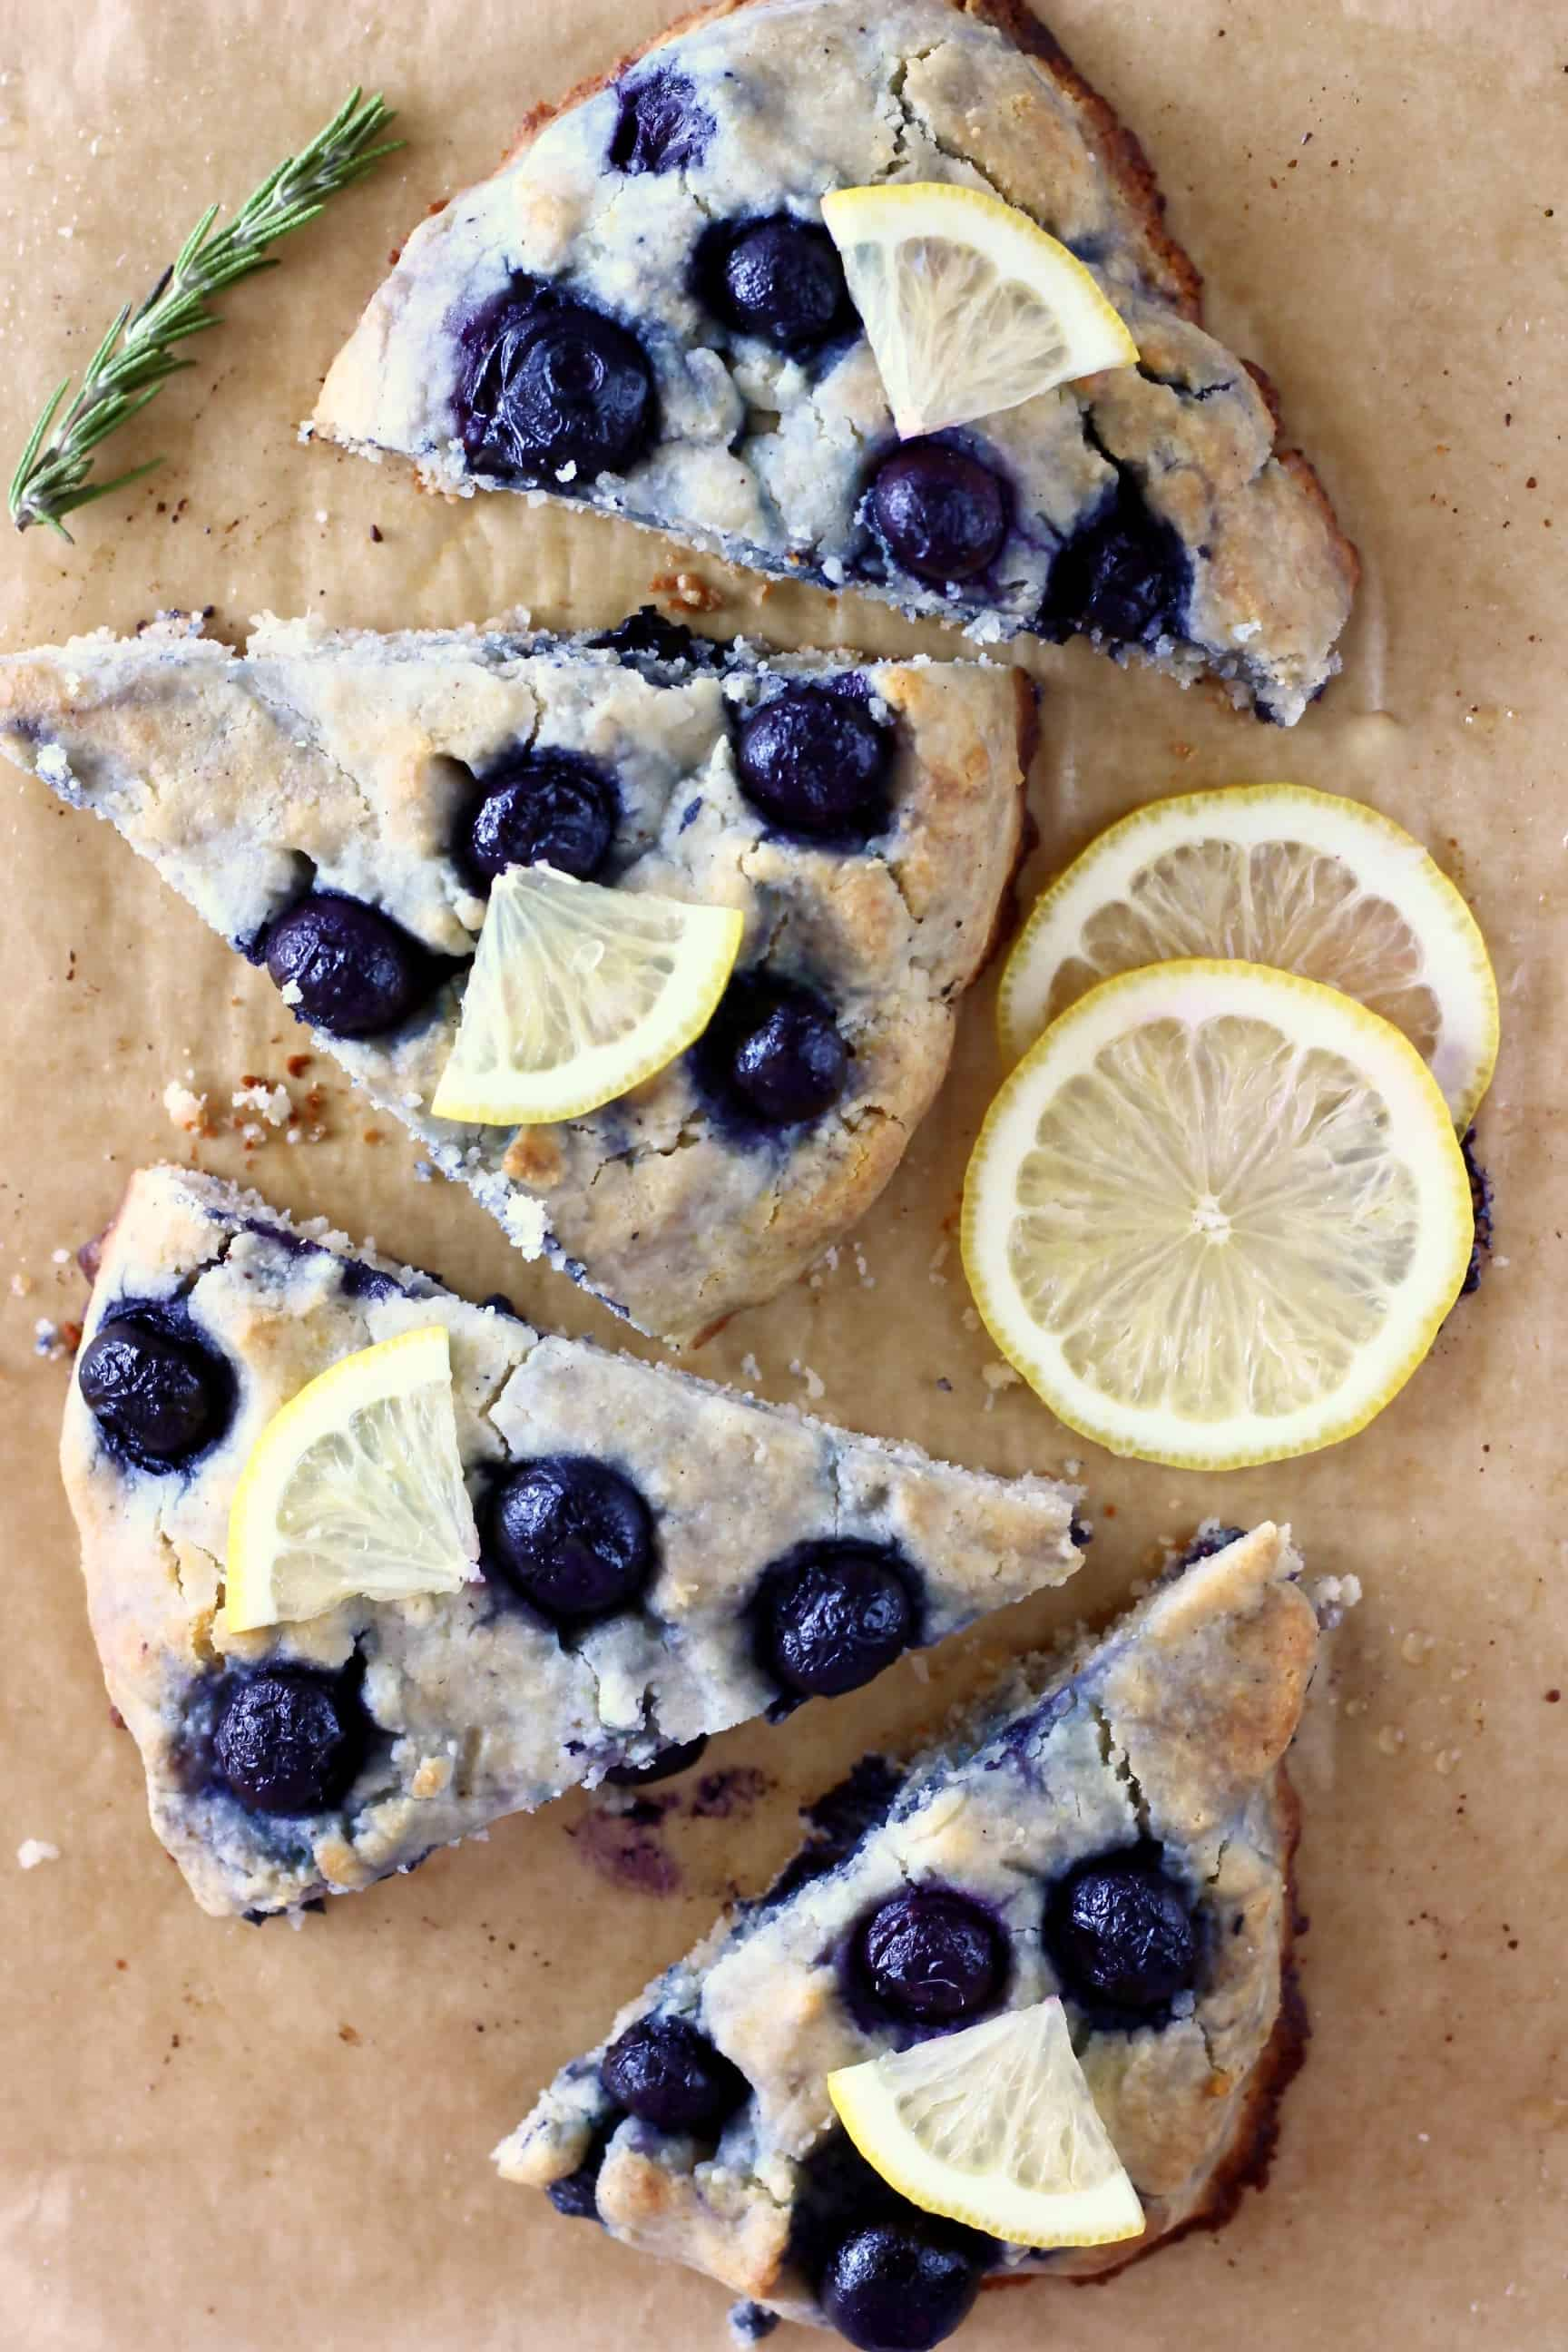 Four triangular gluten-free blueberry scones topped with lemon wedges on a sheet of brown baking paper